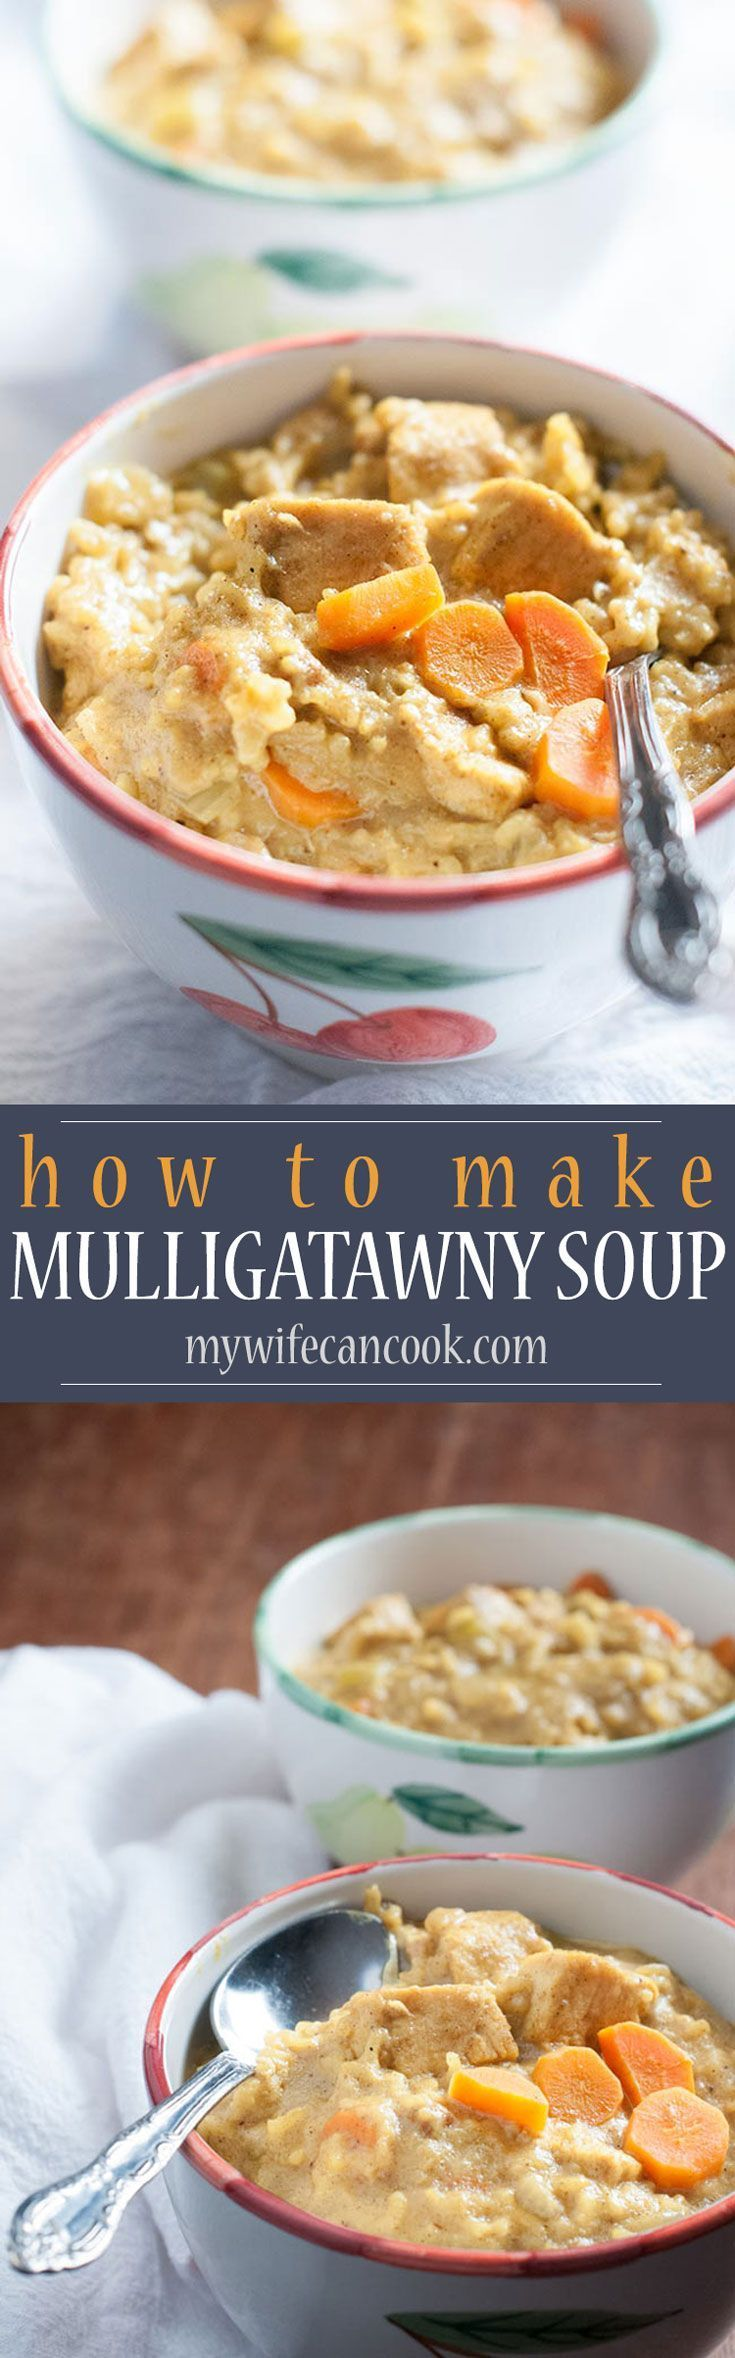 Easy Mulligatawny Soup #mulligatawnysoup Mulligatawny soup is an Indian soup full of flavor--the main spices we use are garam masala and curry.  Packed with spices, chicken, rice, coconut milk, veggies, and apple.  Freeze the leftovers and have mulligatawny soup for dinner or lunch. #mulligatawnysoup Easy Mulligatawny Soup #mulligatawnysoup Mulligatawny soup is an Indian soup full of flavor--the main spices we use are garam masala and curry.  Packed with spices, chicken, rice, coconut milk, vegg #mulligatawnysoup